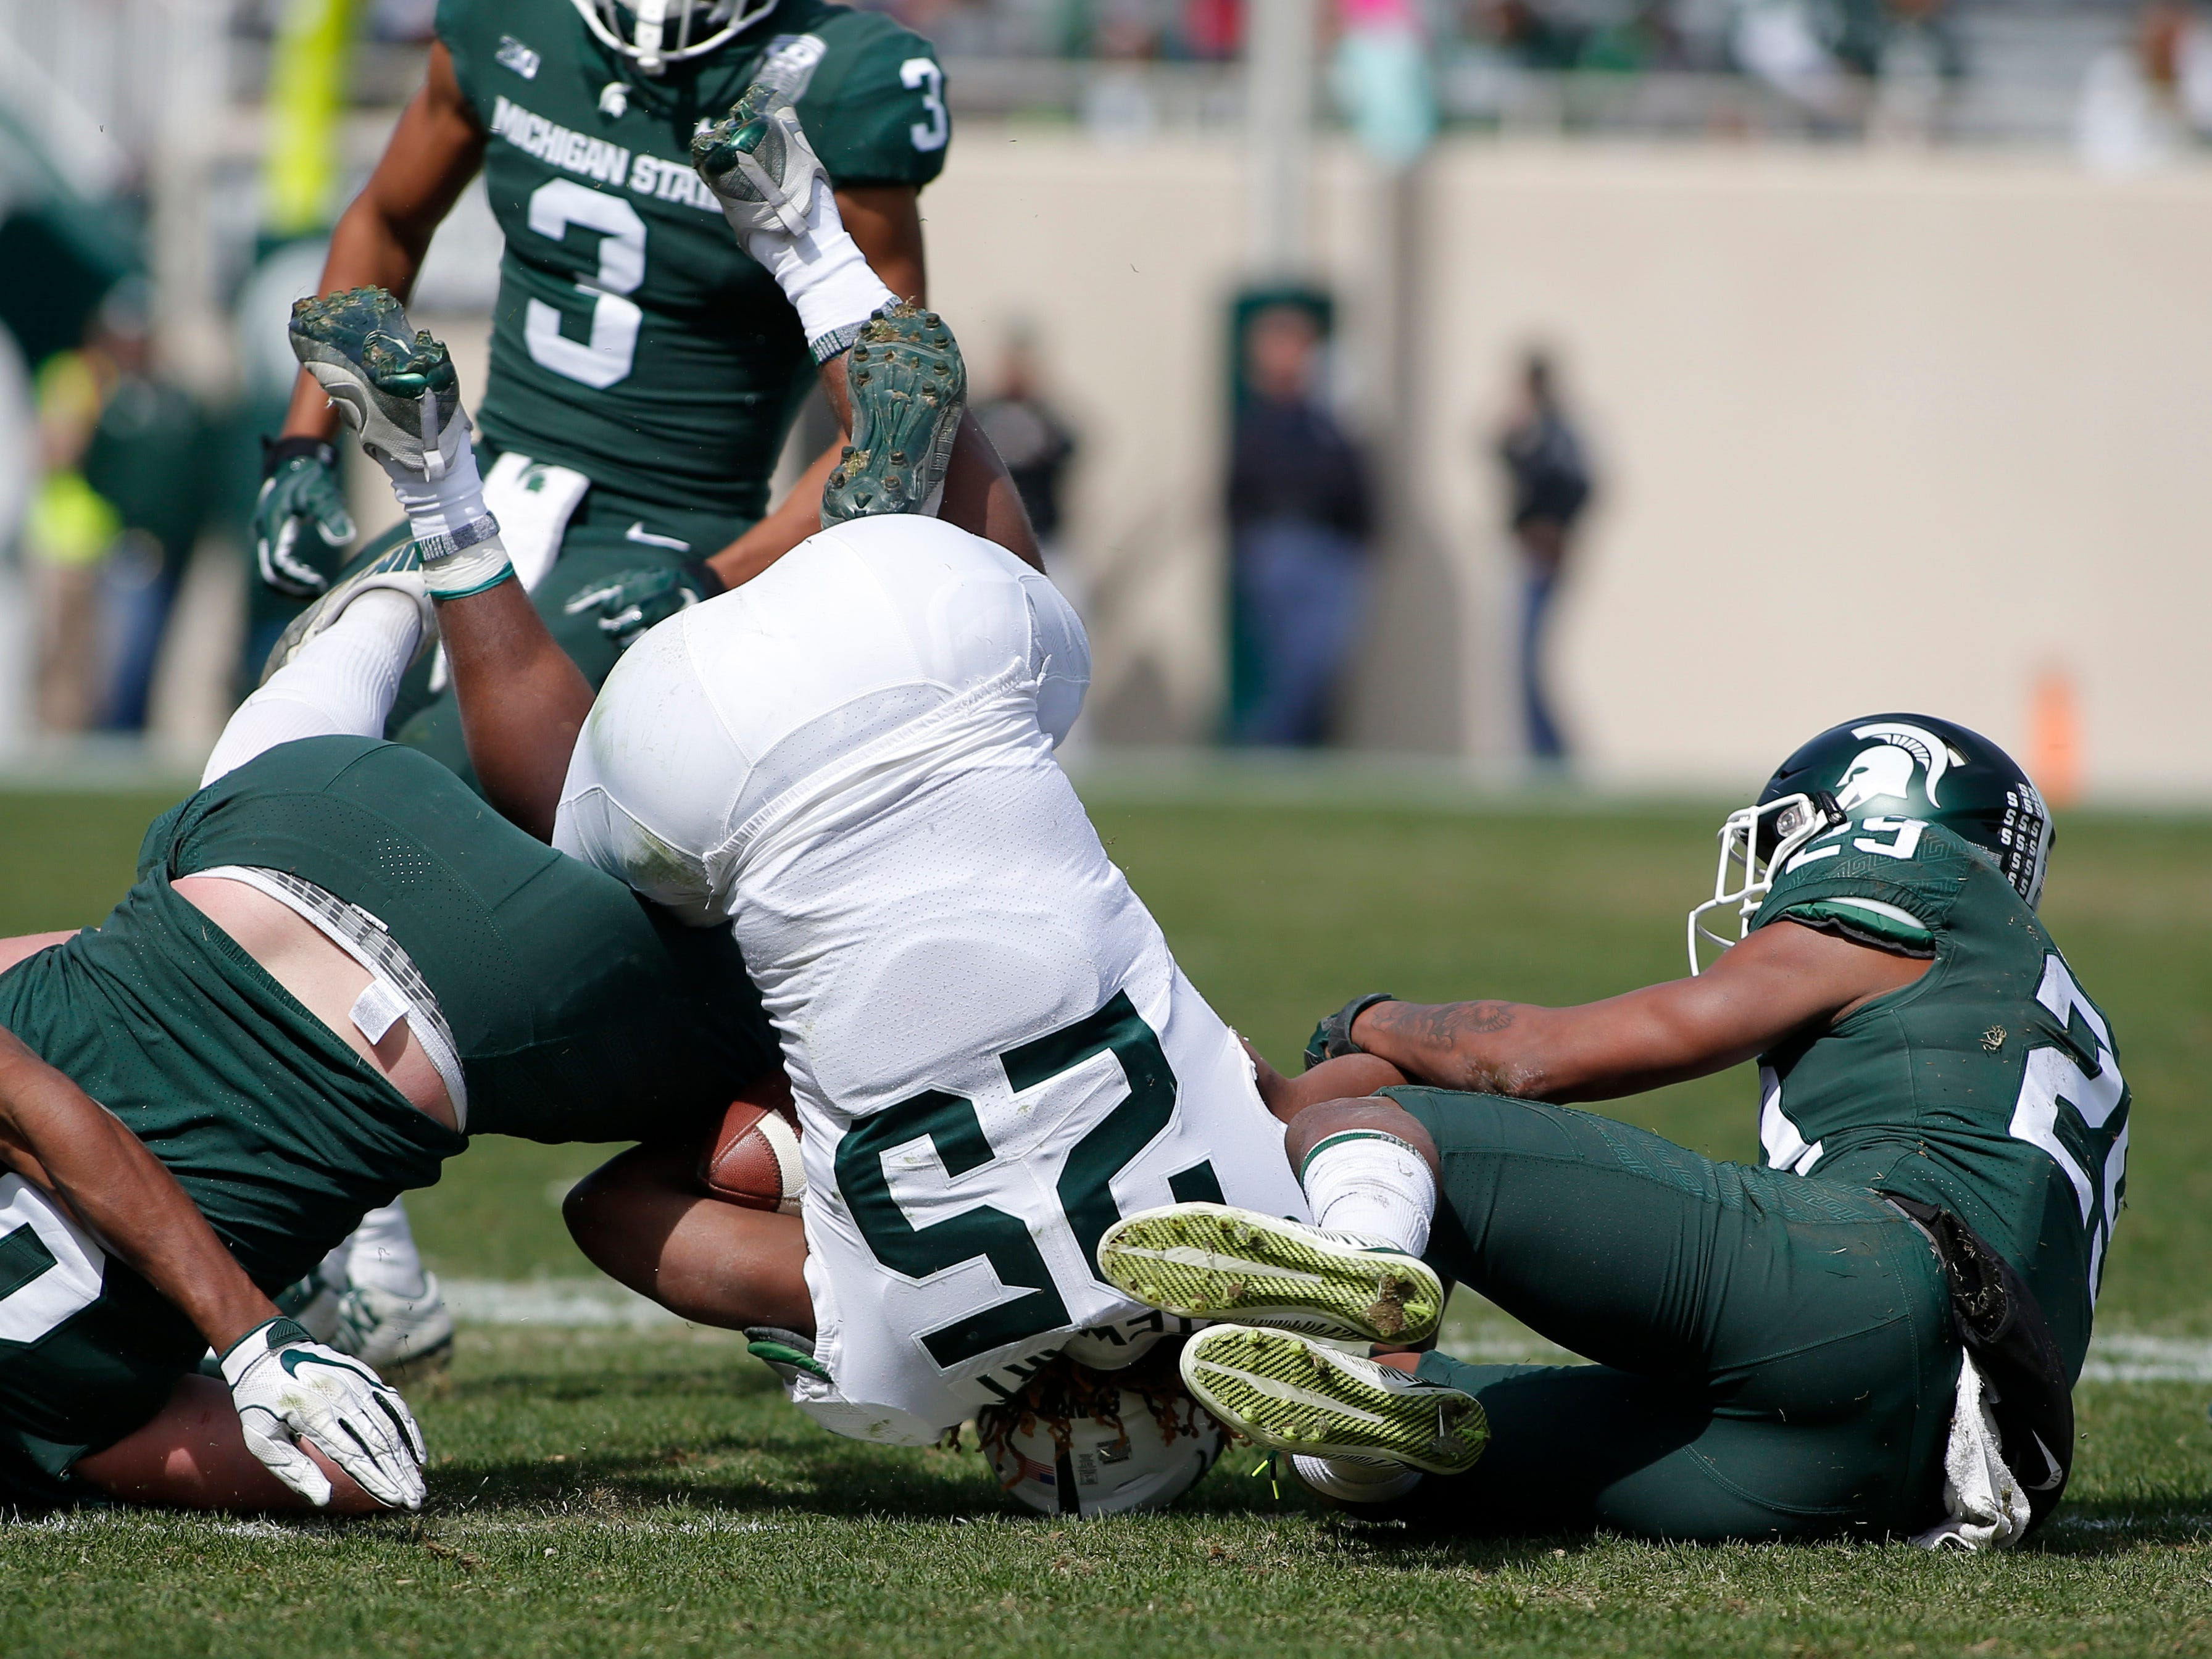 Michigan State's Darrell Stewart Jr. (25) is upended by Shakur Brown (29), Brandon Bouyer-Randle (26) and Drew Beesley during a spring scrimmage Saturday, April 13, 2019, in East Lansing.